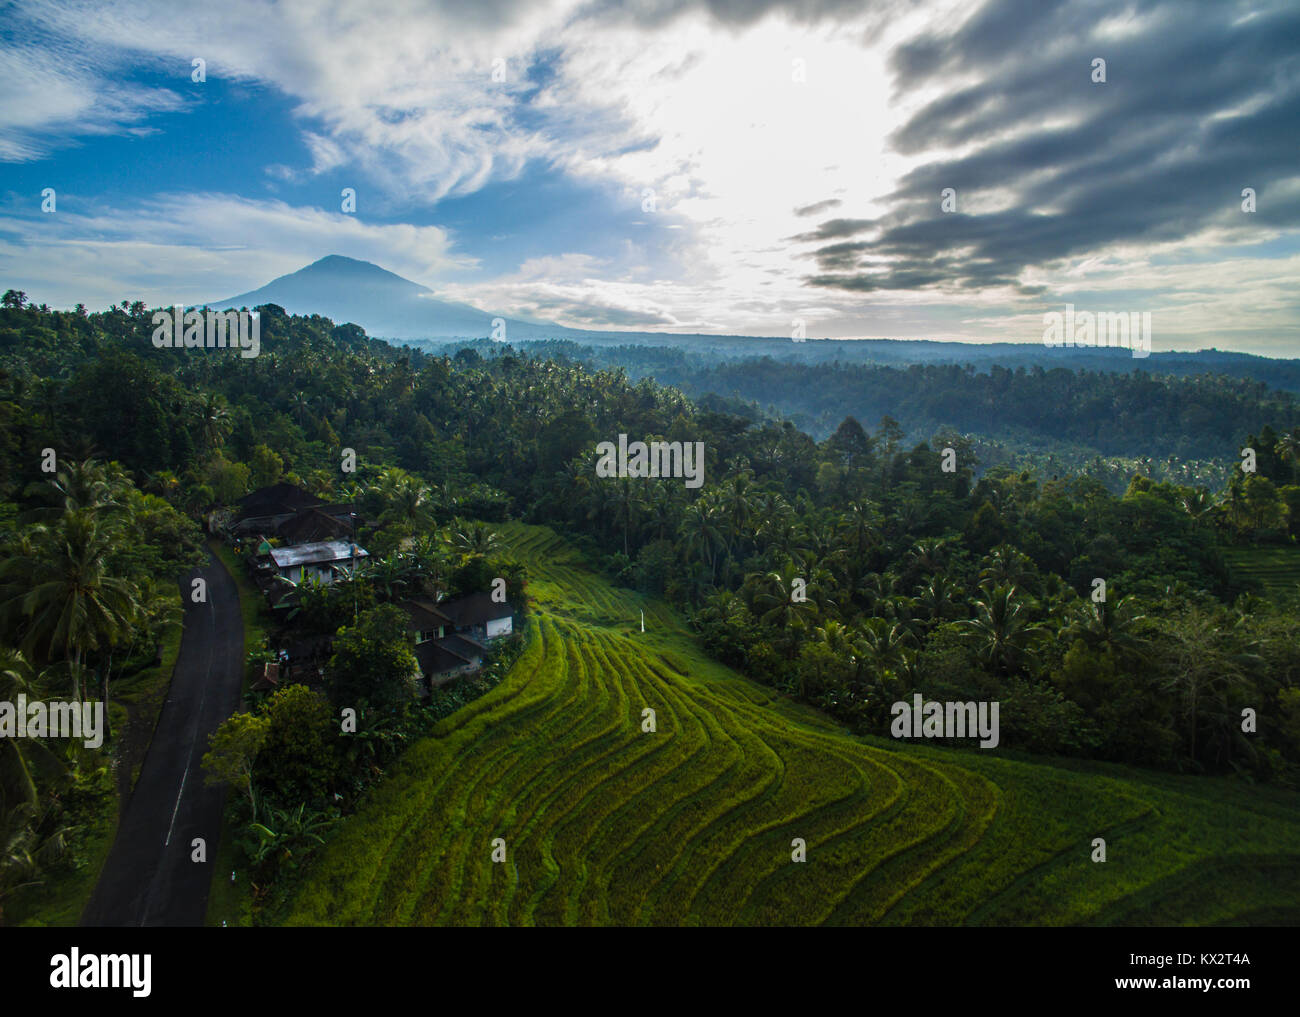 Beautiful morning in rice terrace of Tabanan Bali, with mount Batukaru (Batukau) in the background. - Stock Image